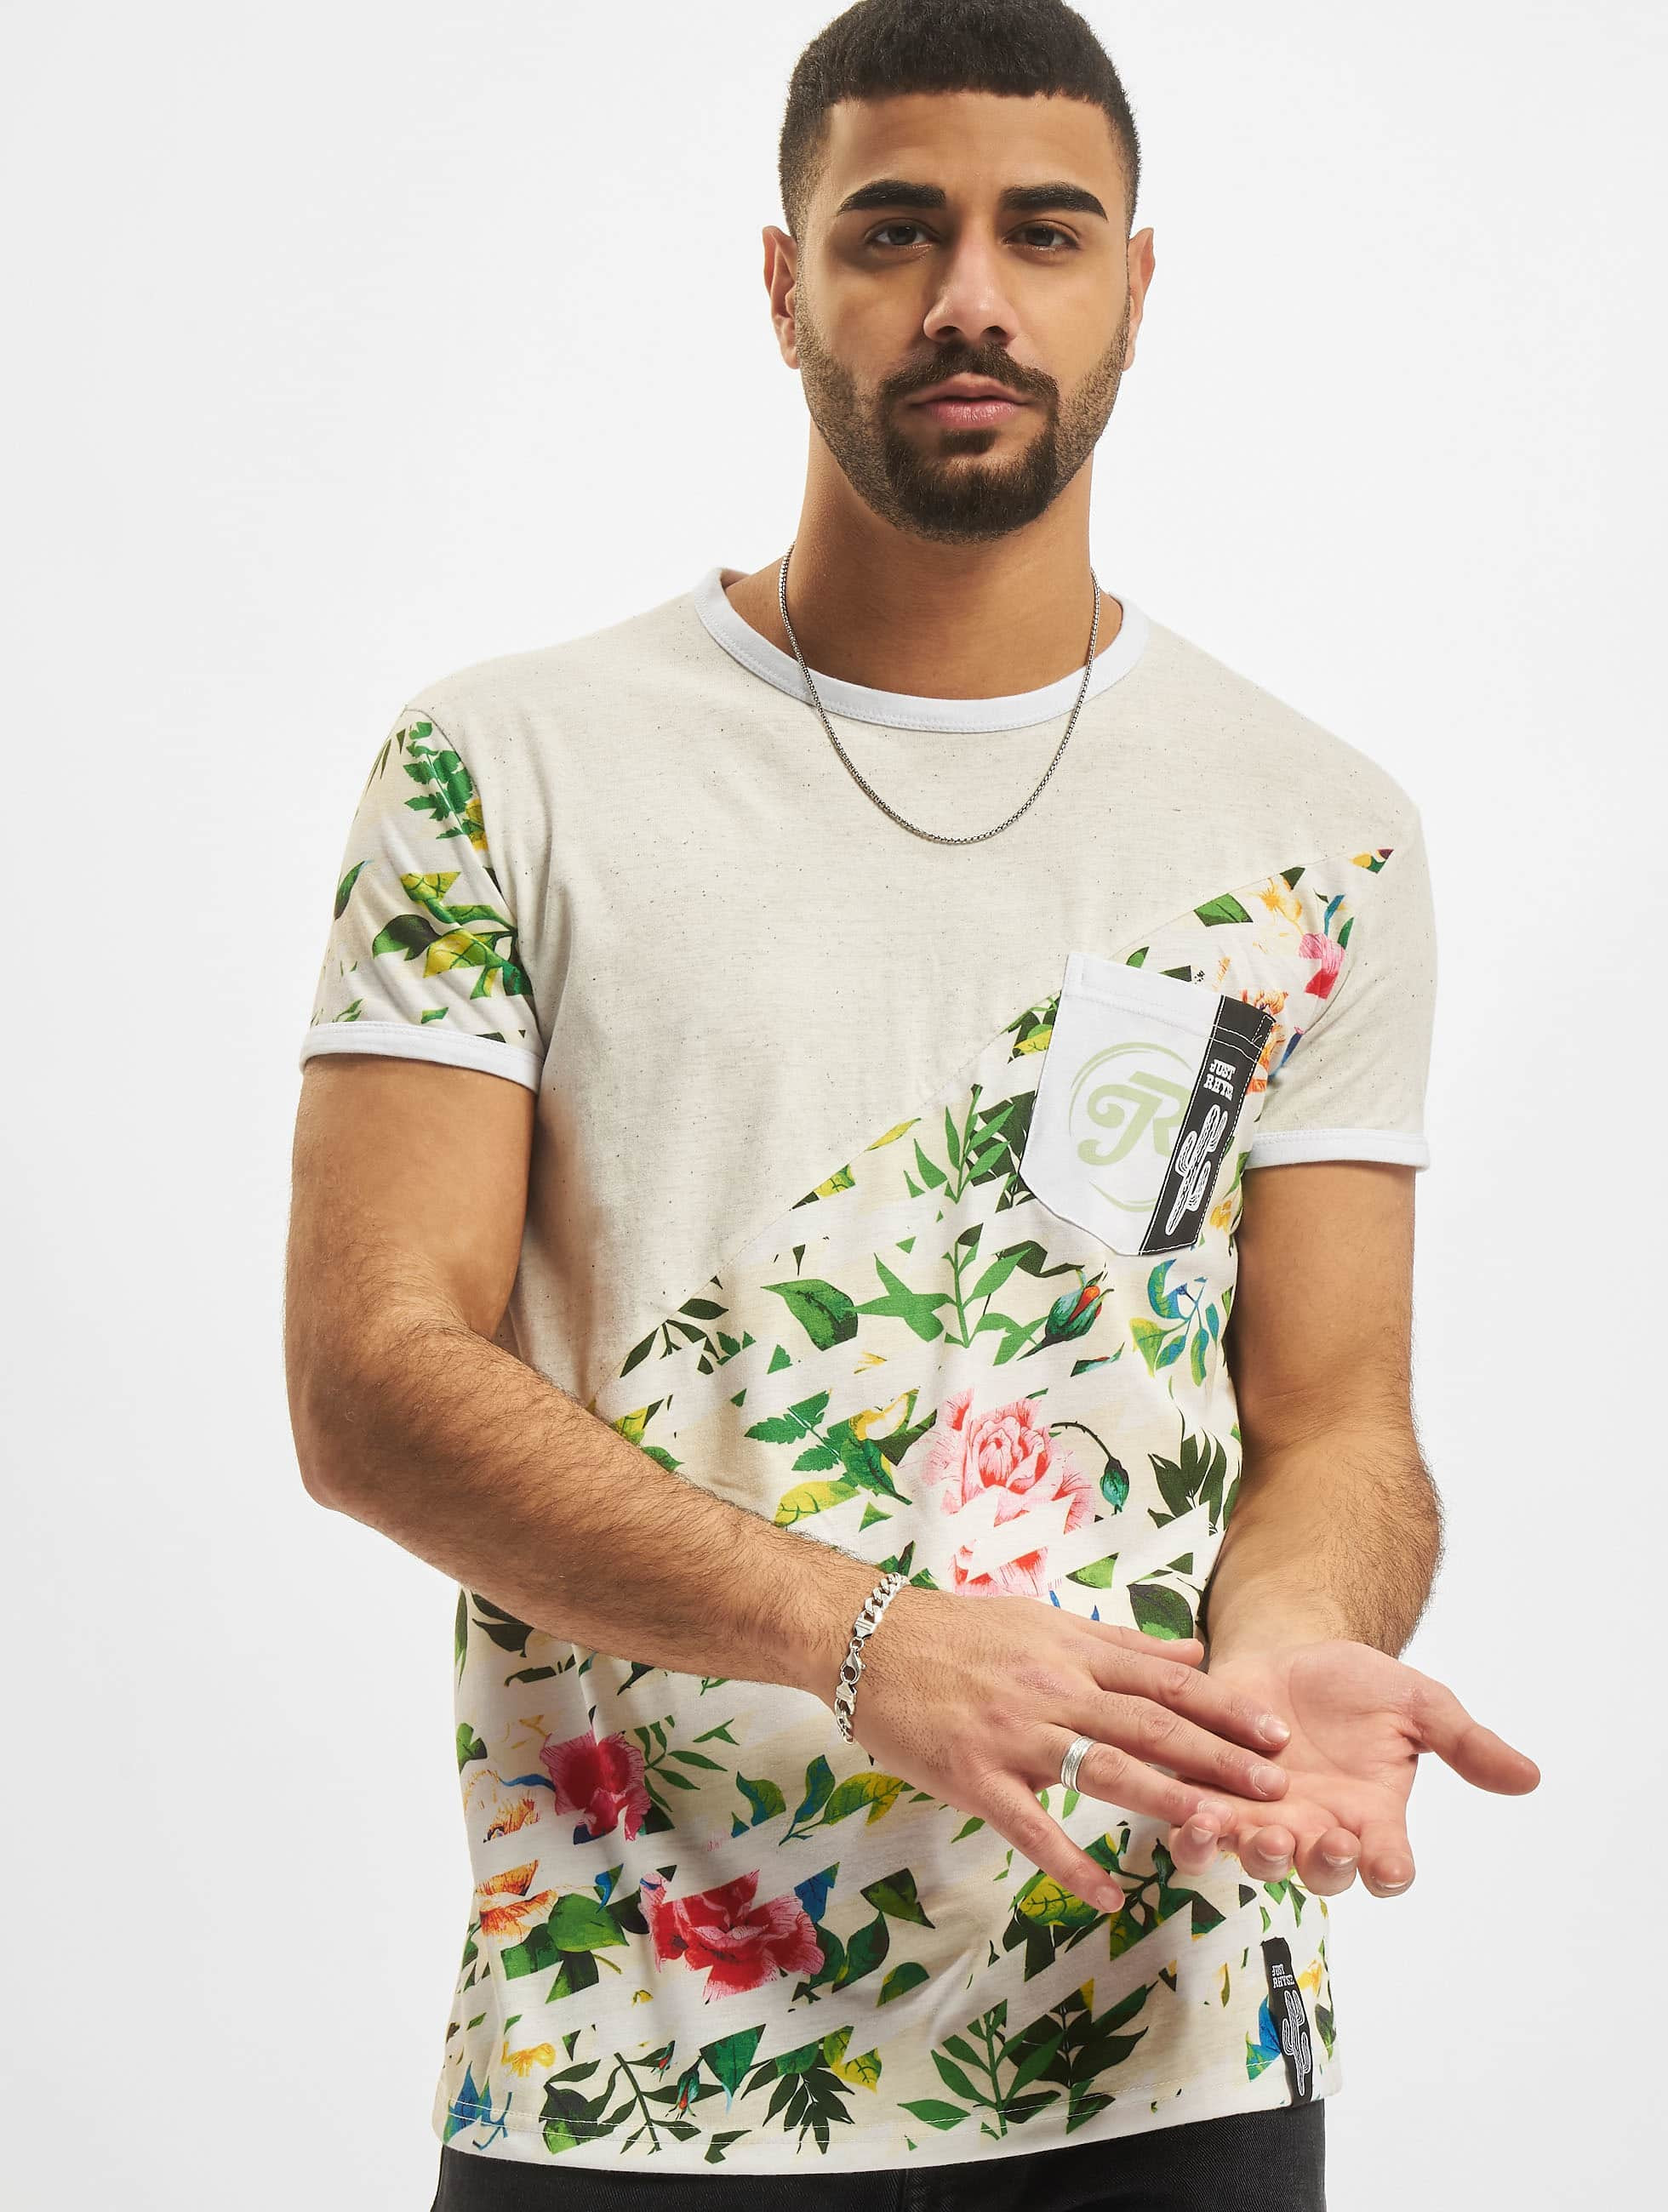 T-Shirt Floral in grau